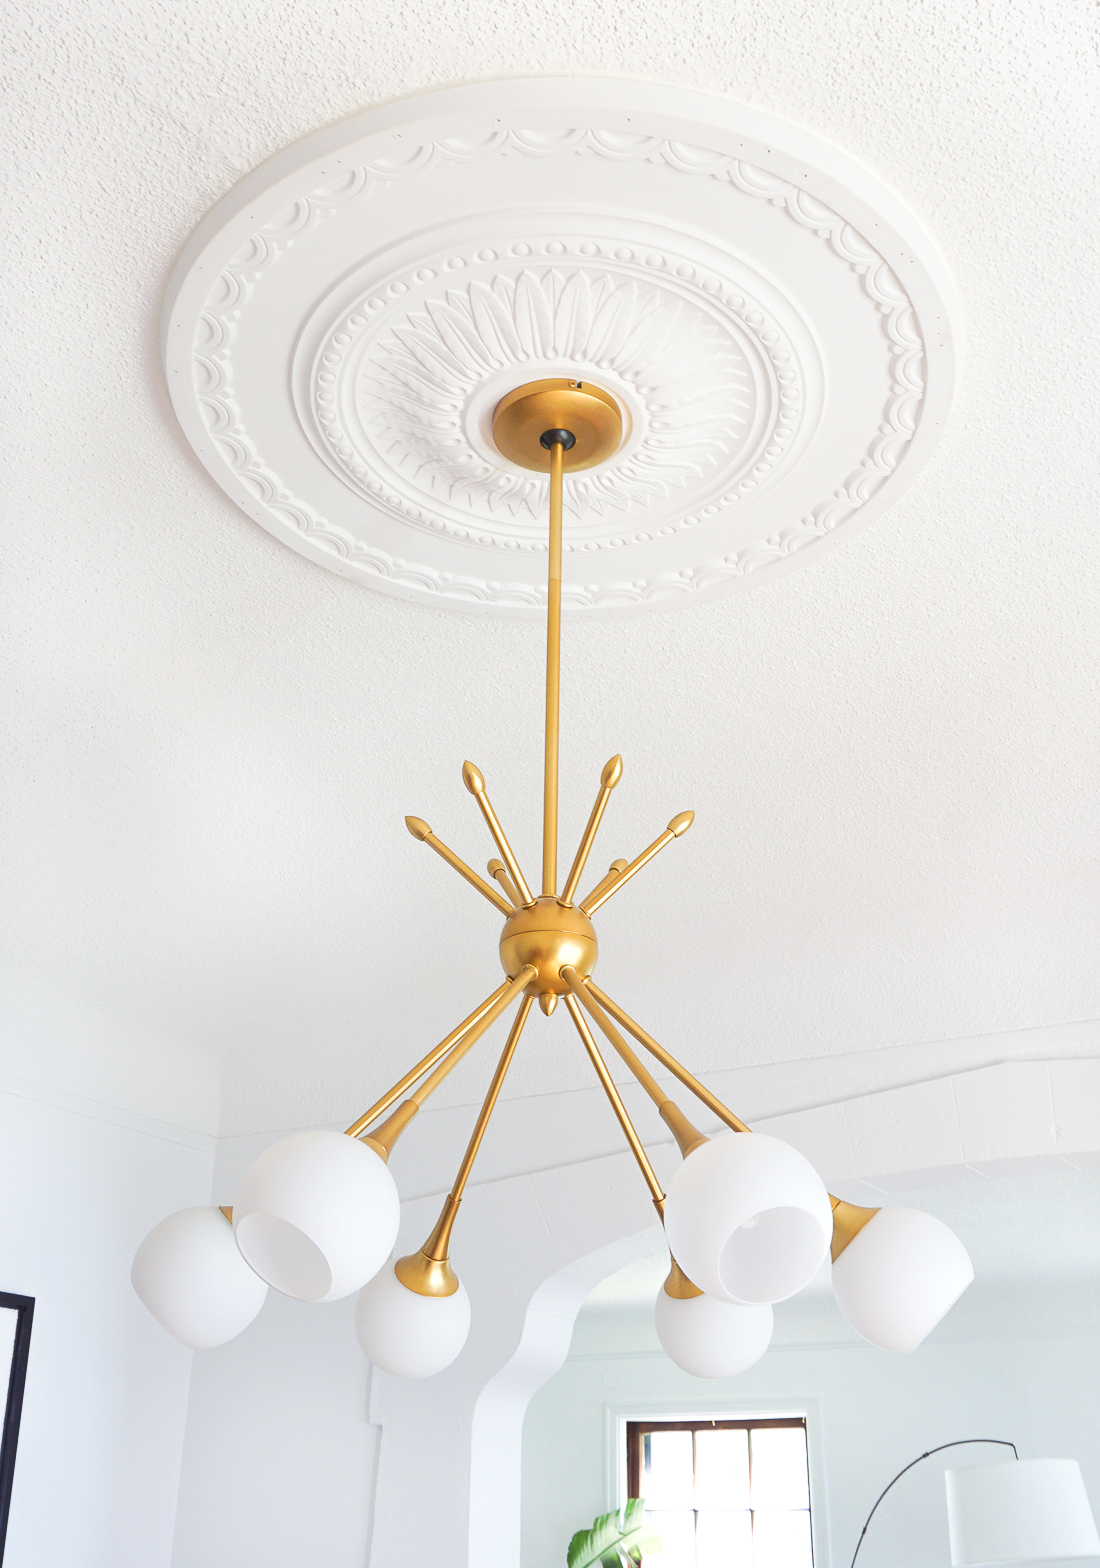 How to center a light fixture using a ceiling medallion francois use a ceiling medallion to center your light fixture over the dining table click to aloadofball Image collections